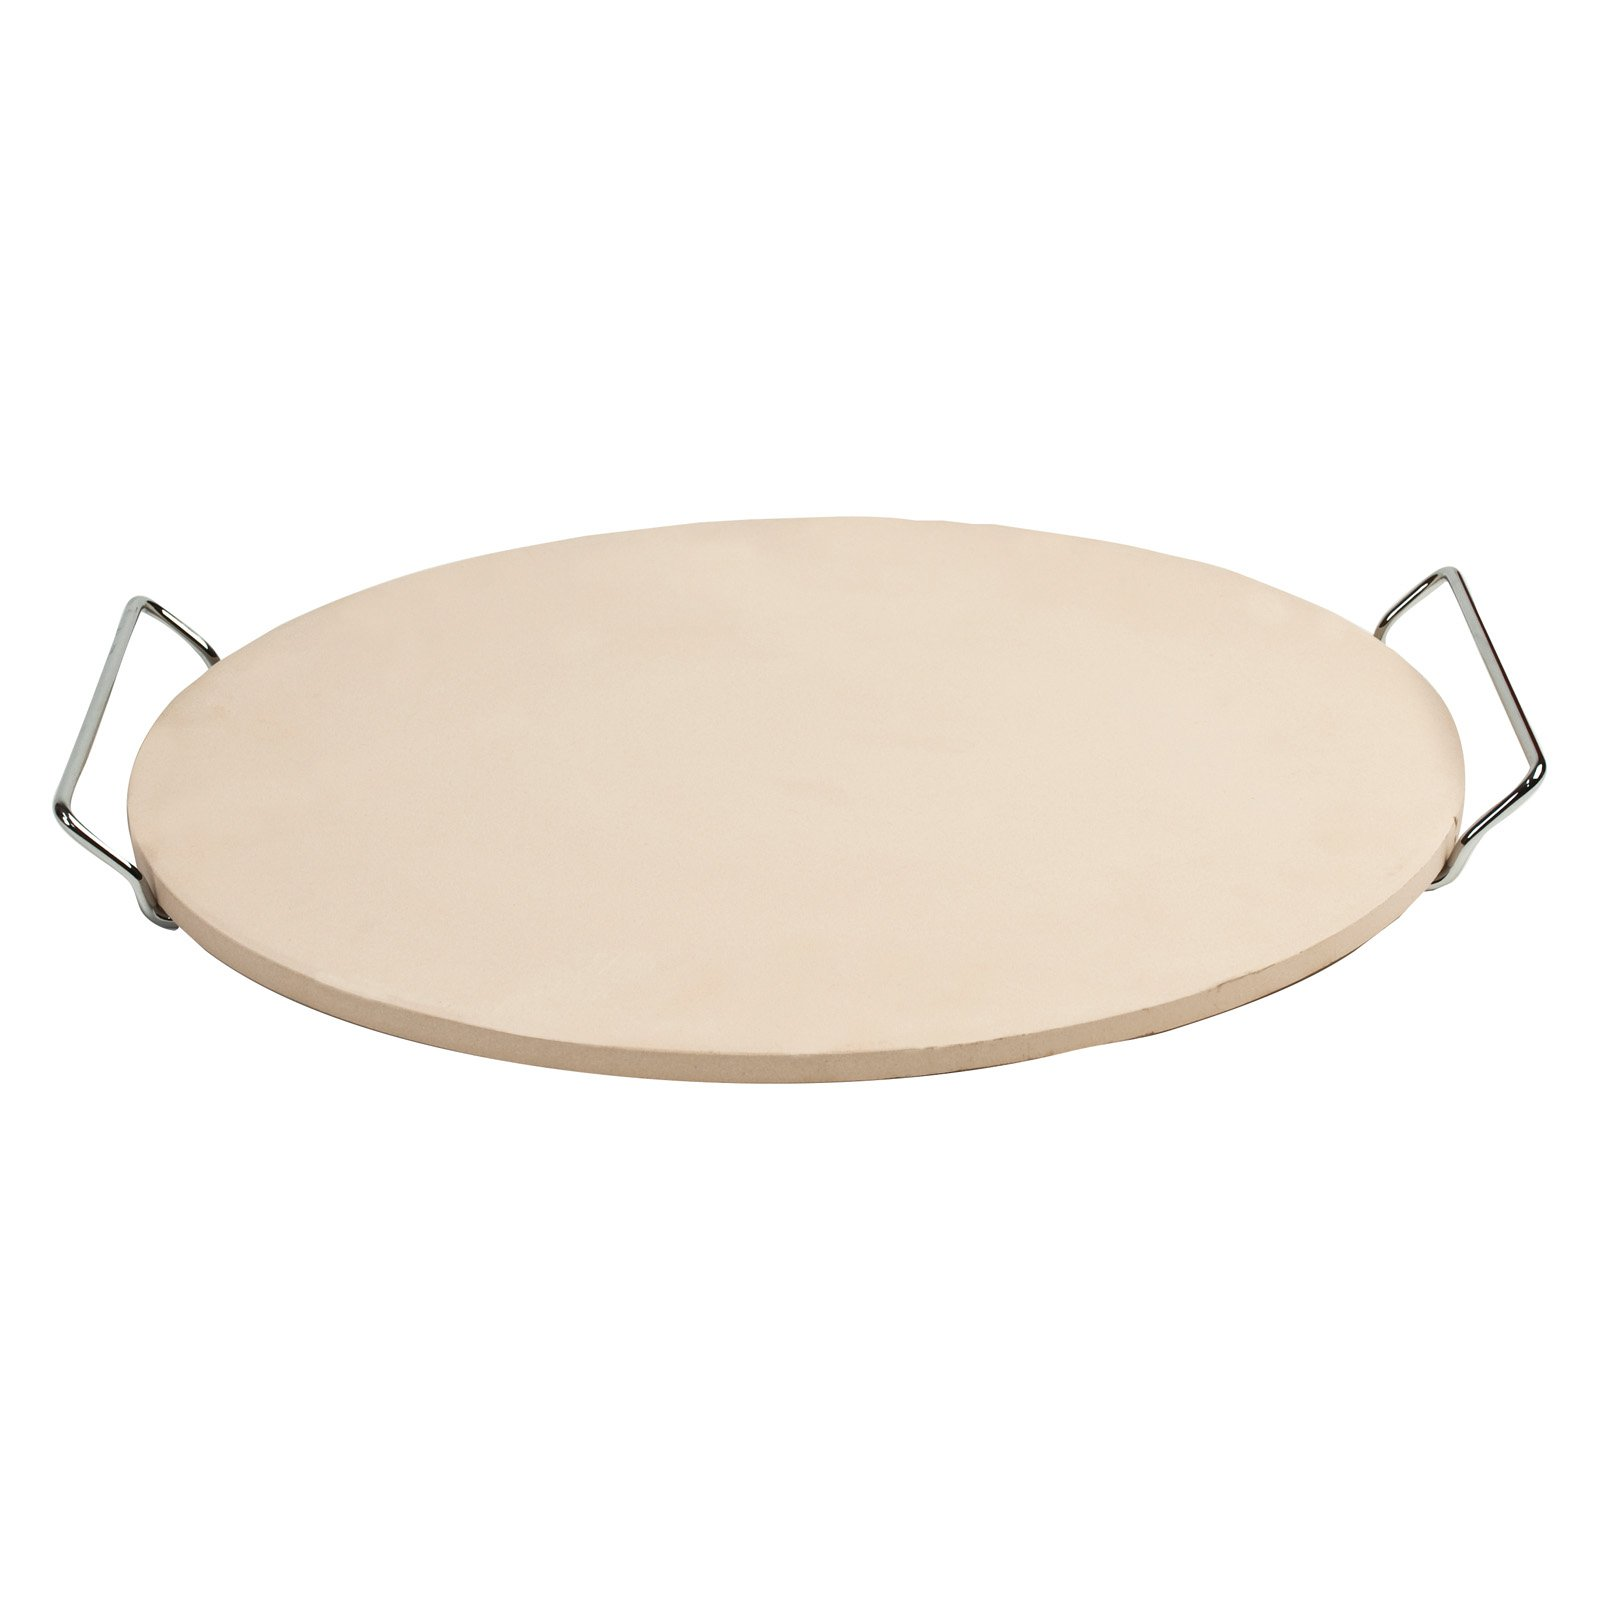 "Pizzacraft 15"" Round Ceramic Pizza Stone And Baking Stone With Wire Frame, For Oven, Grill, Or Bbq Pc0001 by Pizzacraft"